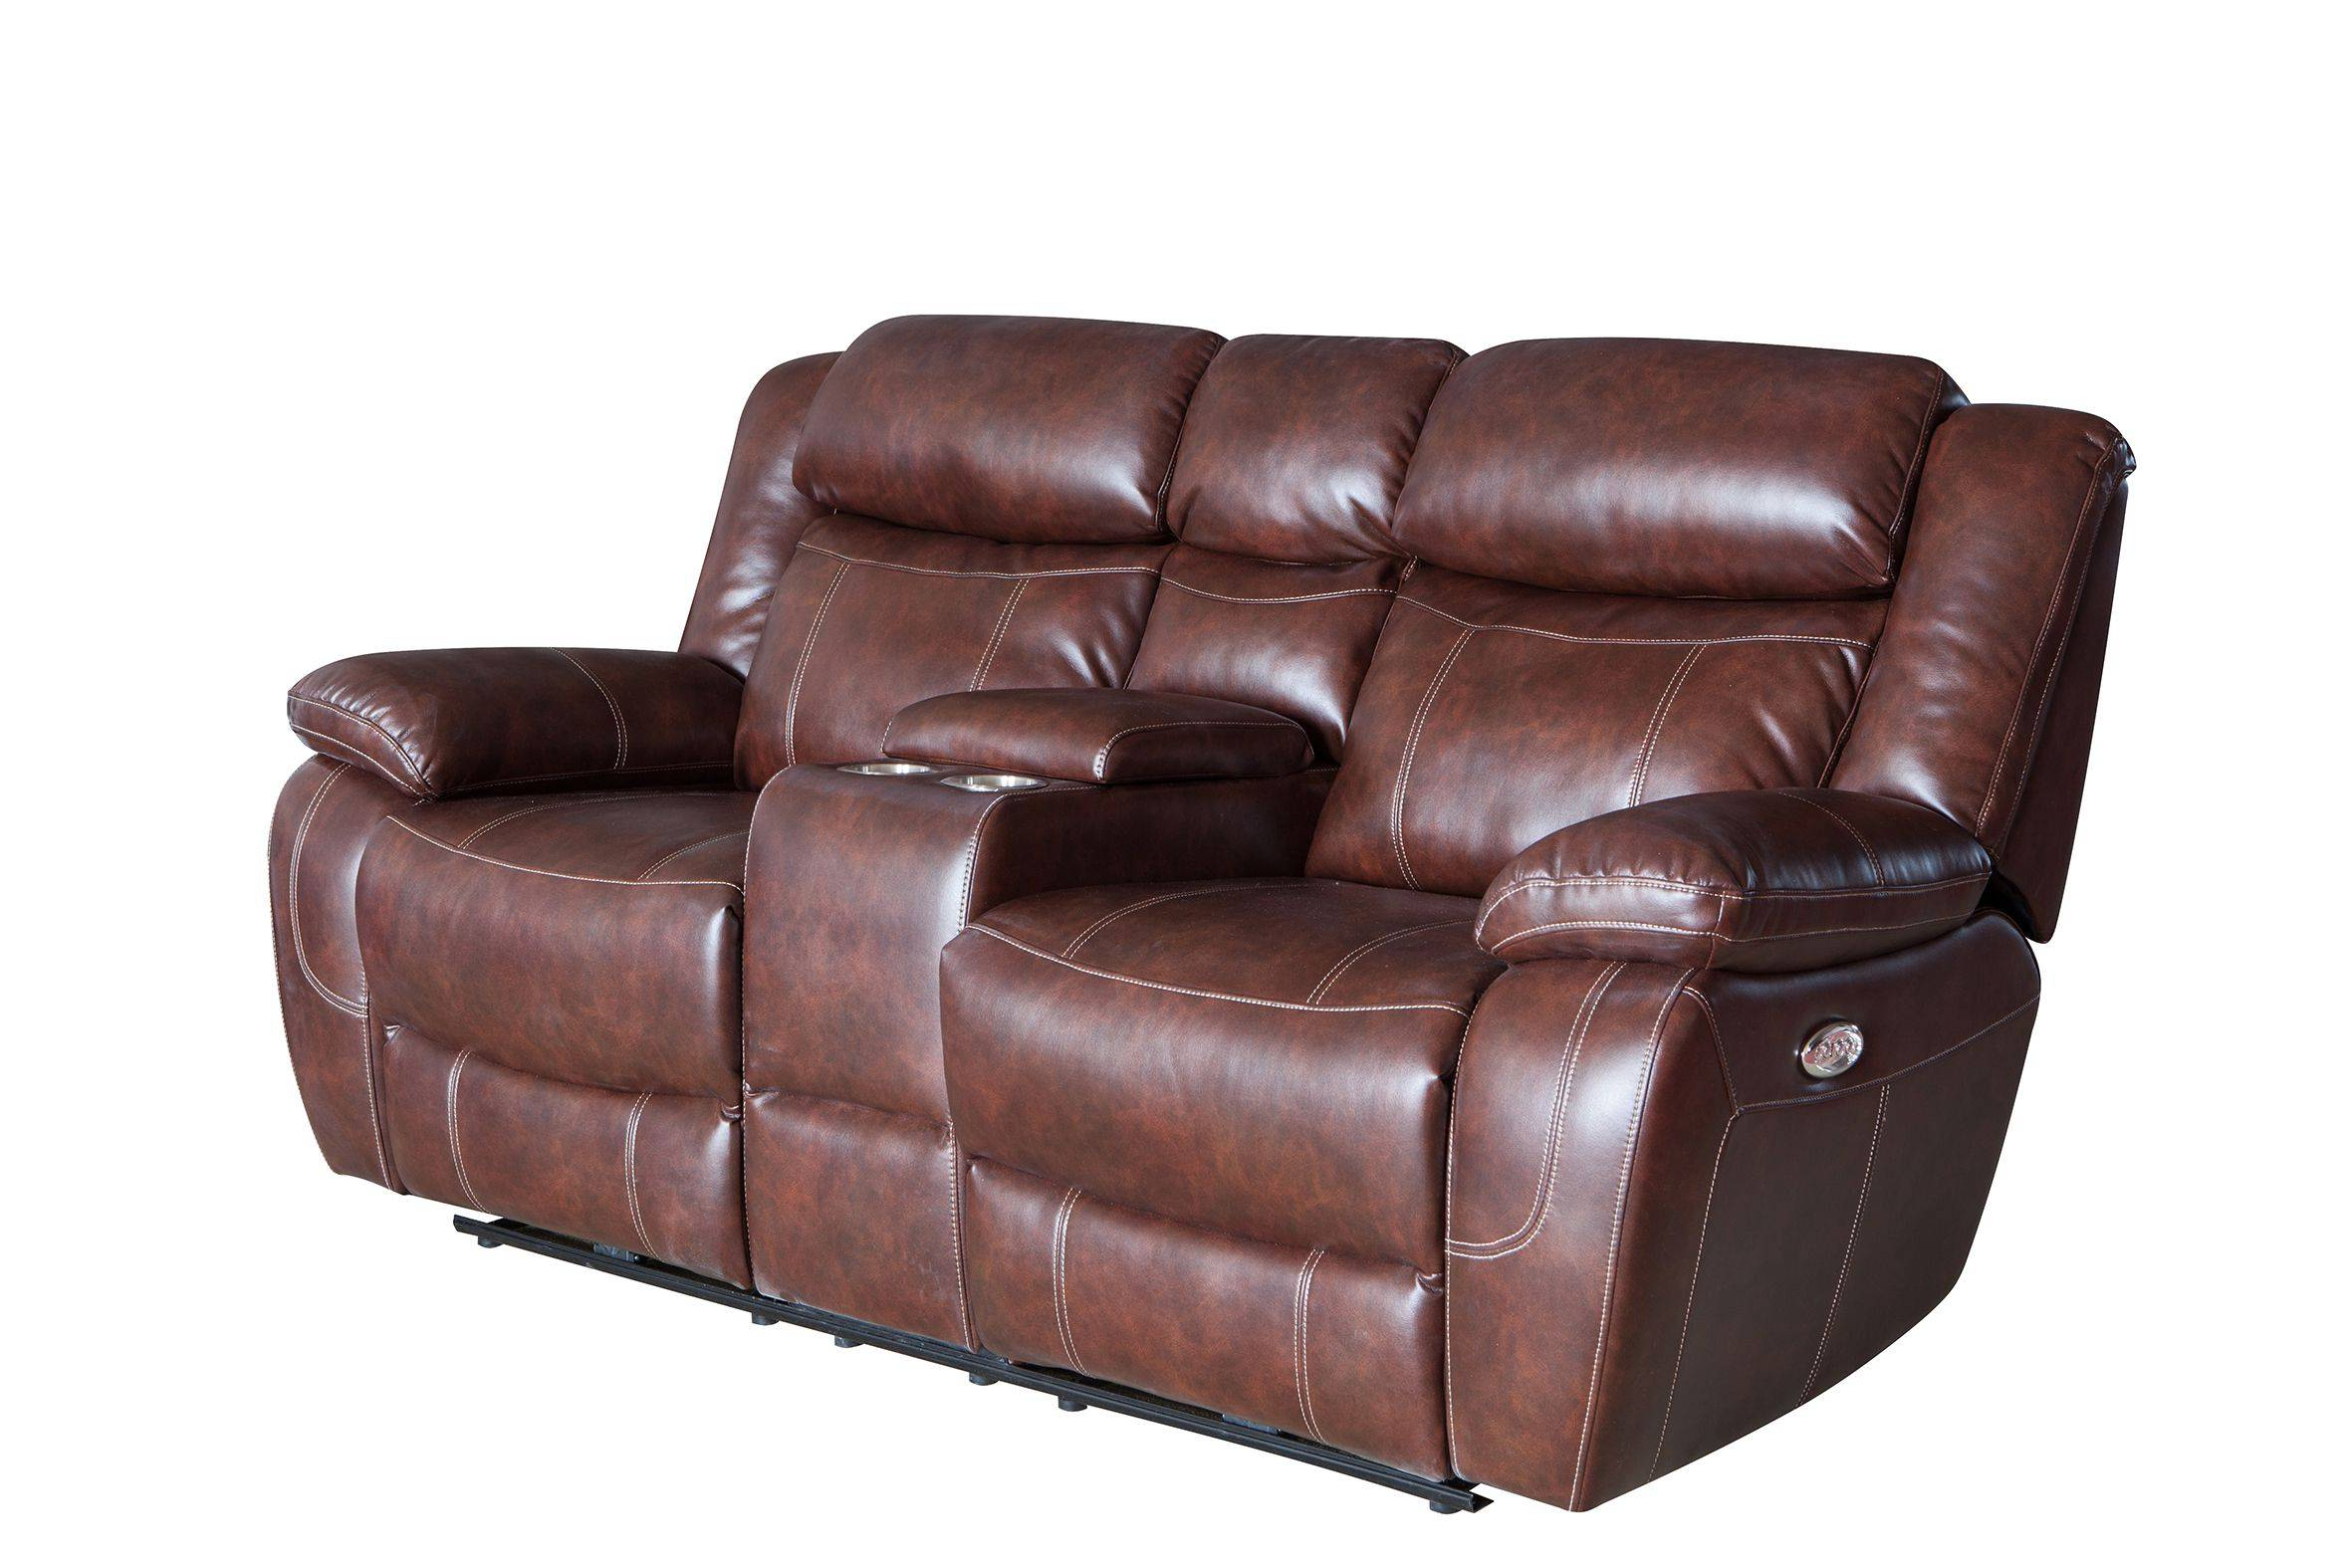 High quality and modern living room  leisure leather recliner sofa